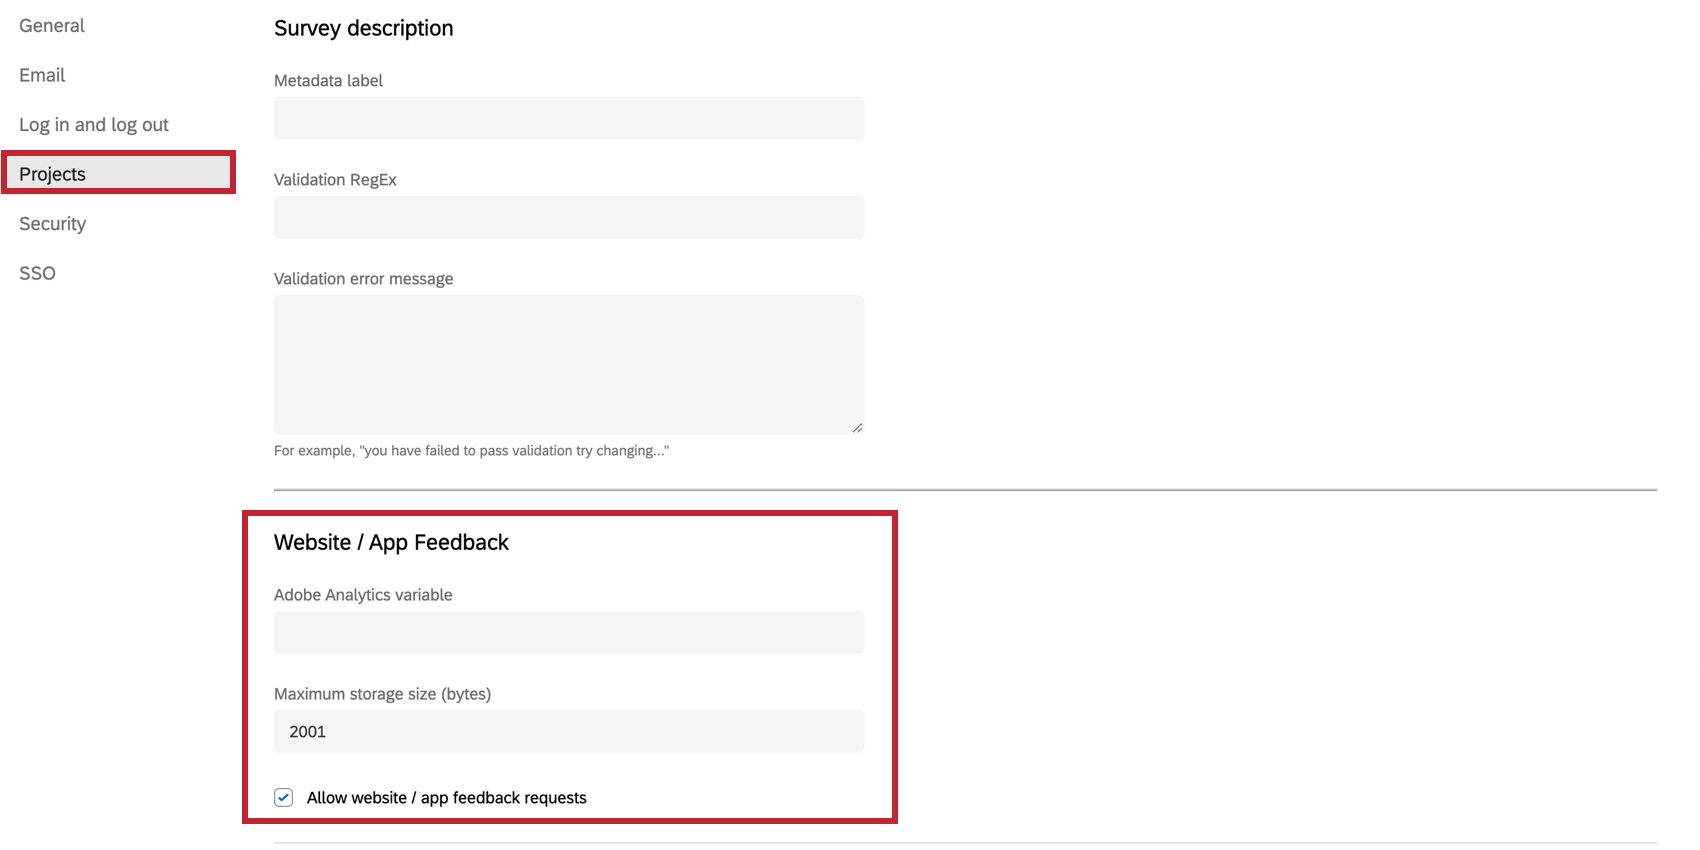 Website / App Feedback settings in the Projects section of the Organization Settings page